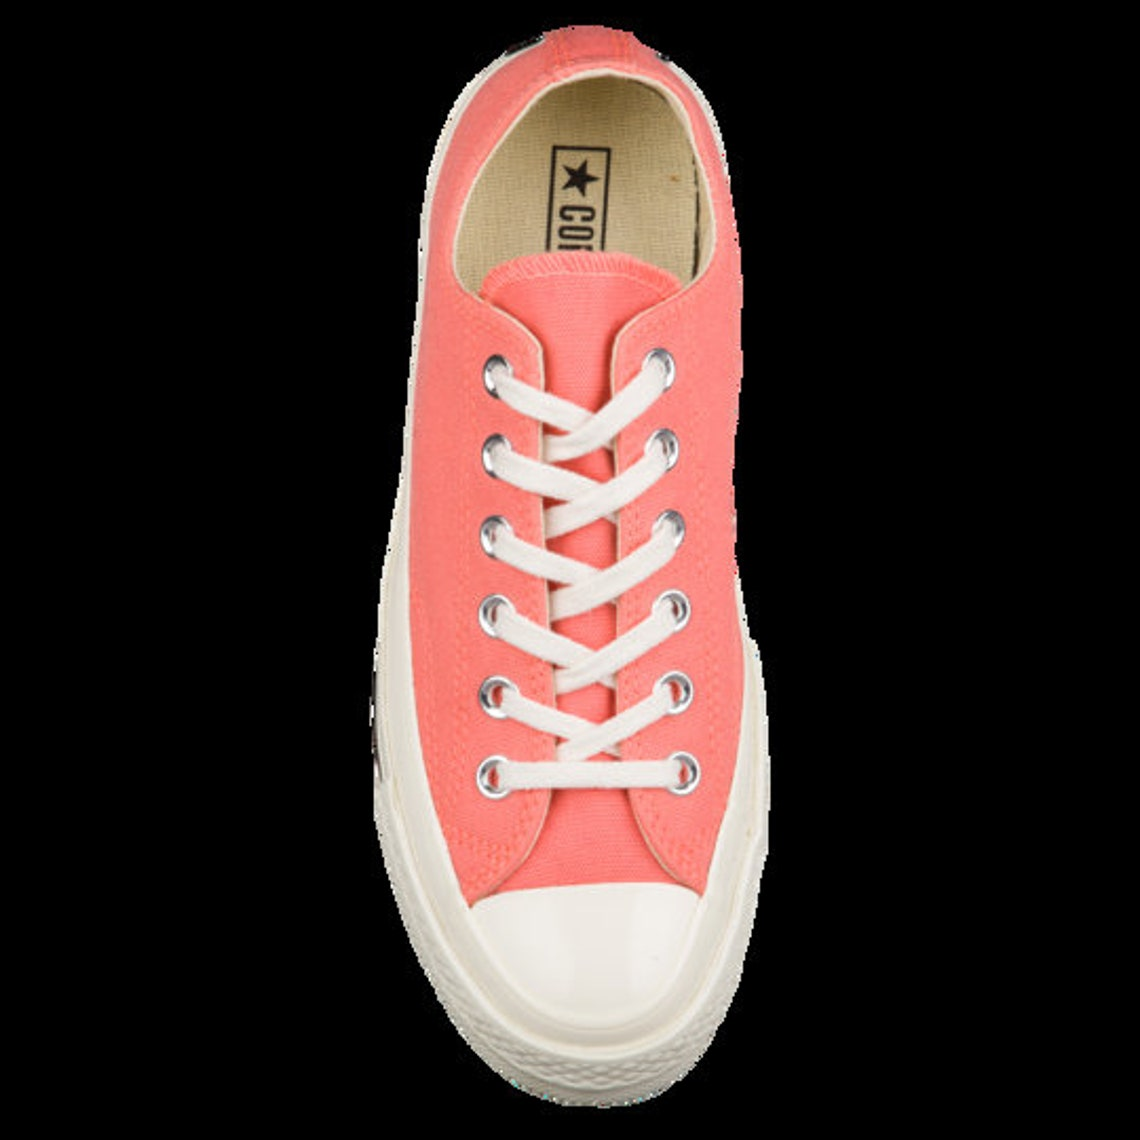 Watermelon Coral Converse 70s Pink Low Tops Custom Kicks w/ Swarovski Crystal Rhinestone Chuck Taylor All Star Bridal Wedding Sneakers Shoes